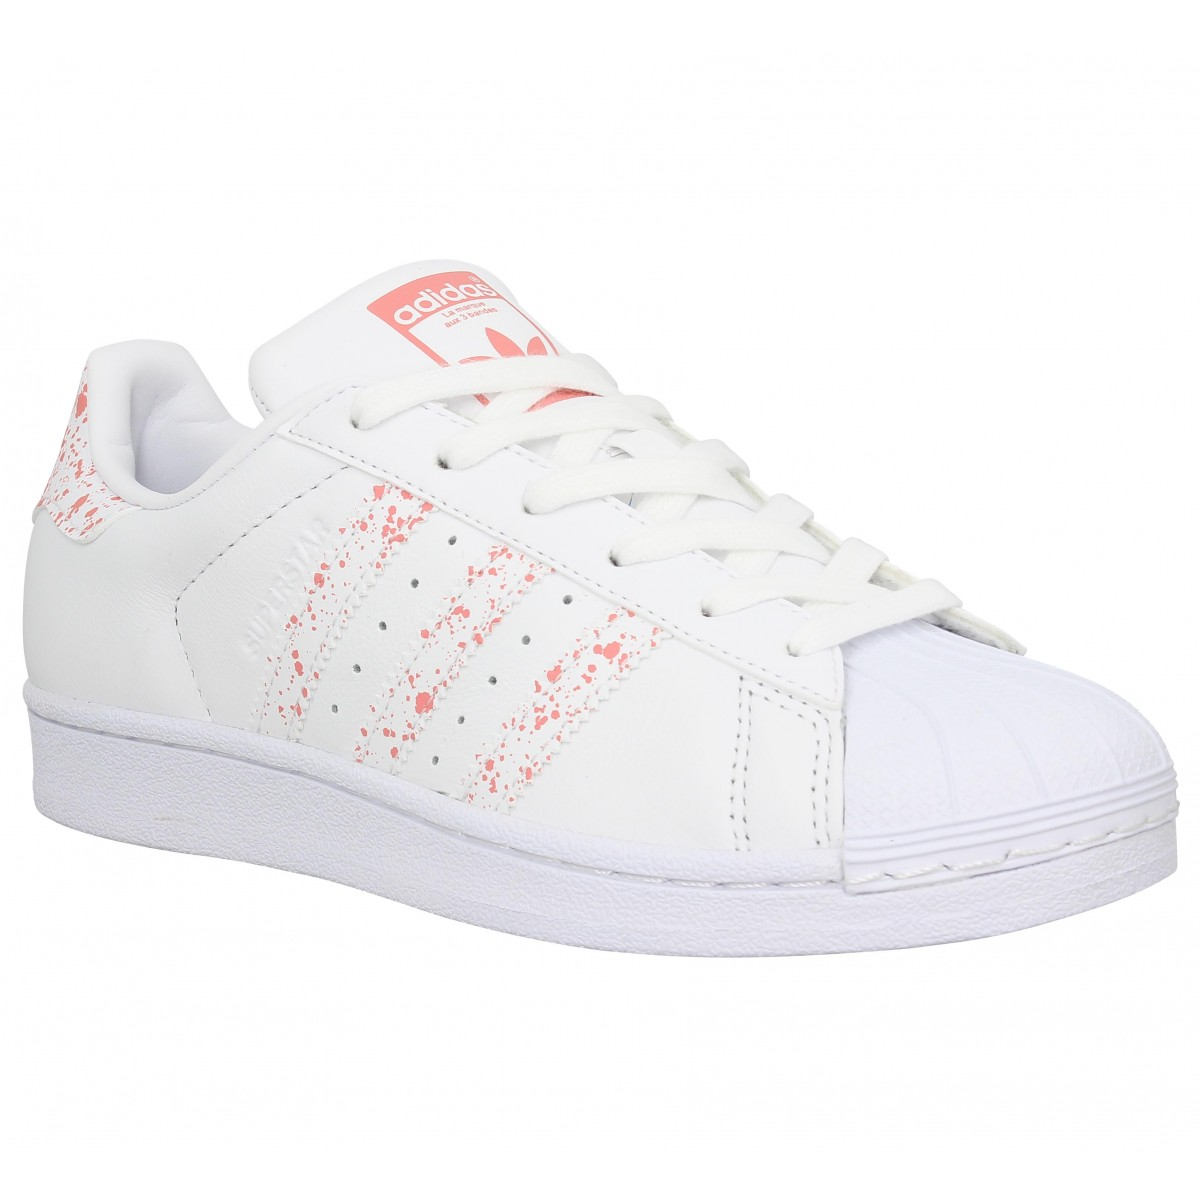 sale retailer dd21e 4bed2 Baskets ADIDAS Superstar cuir Femme Blanc Rose